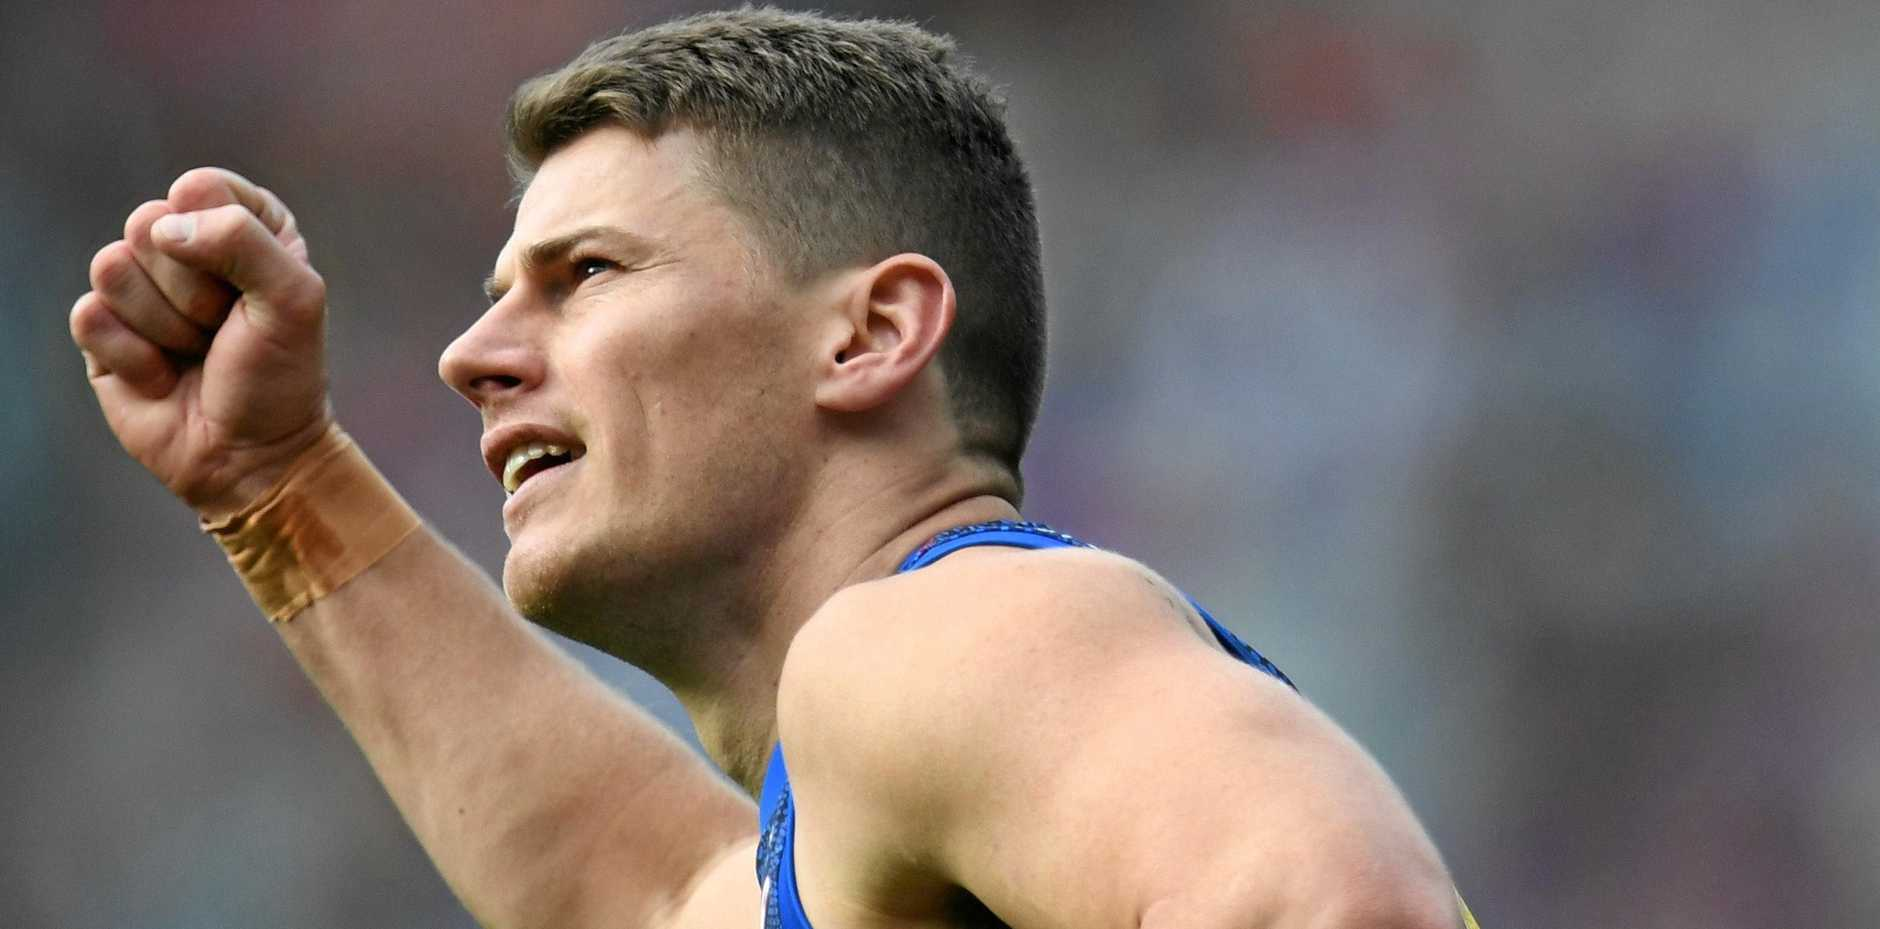 Dayne Zorko had a career-year for the Brisbane Lions last season, but he wants team success to come alongside his personal achievements.